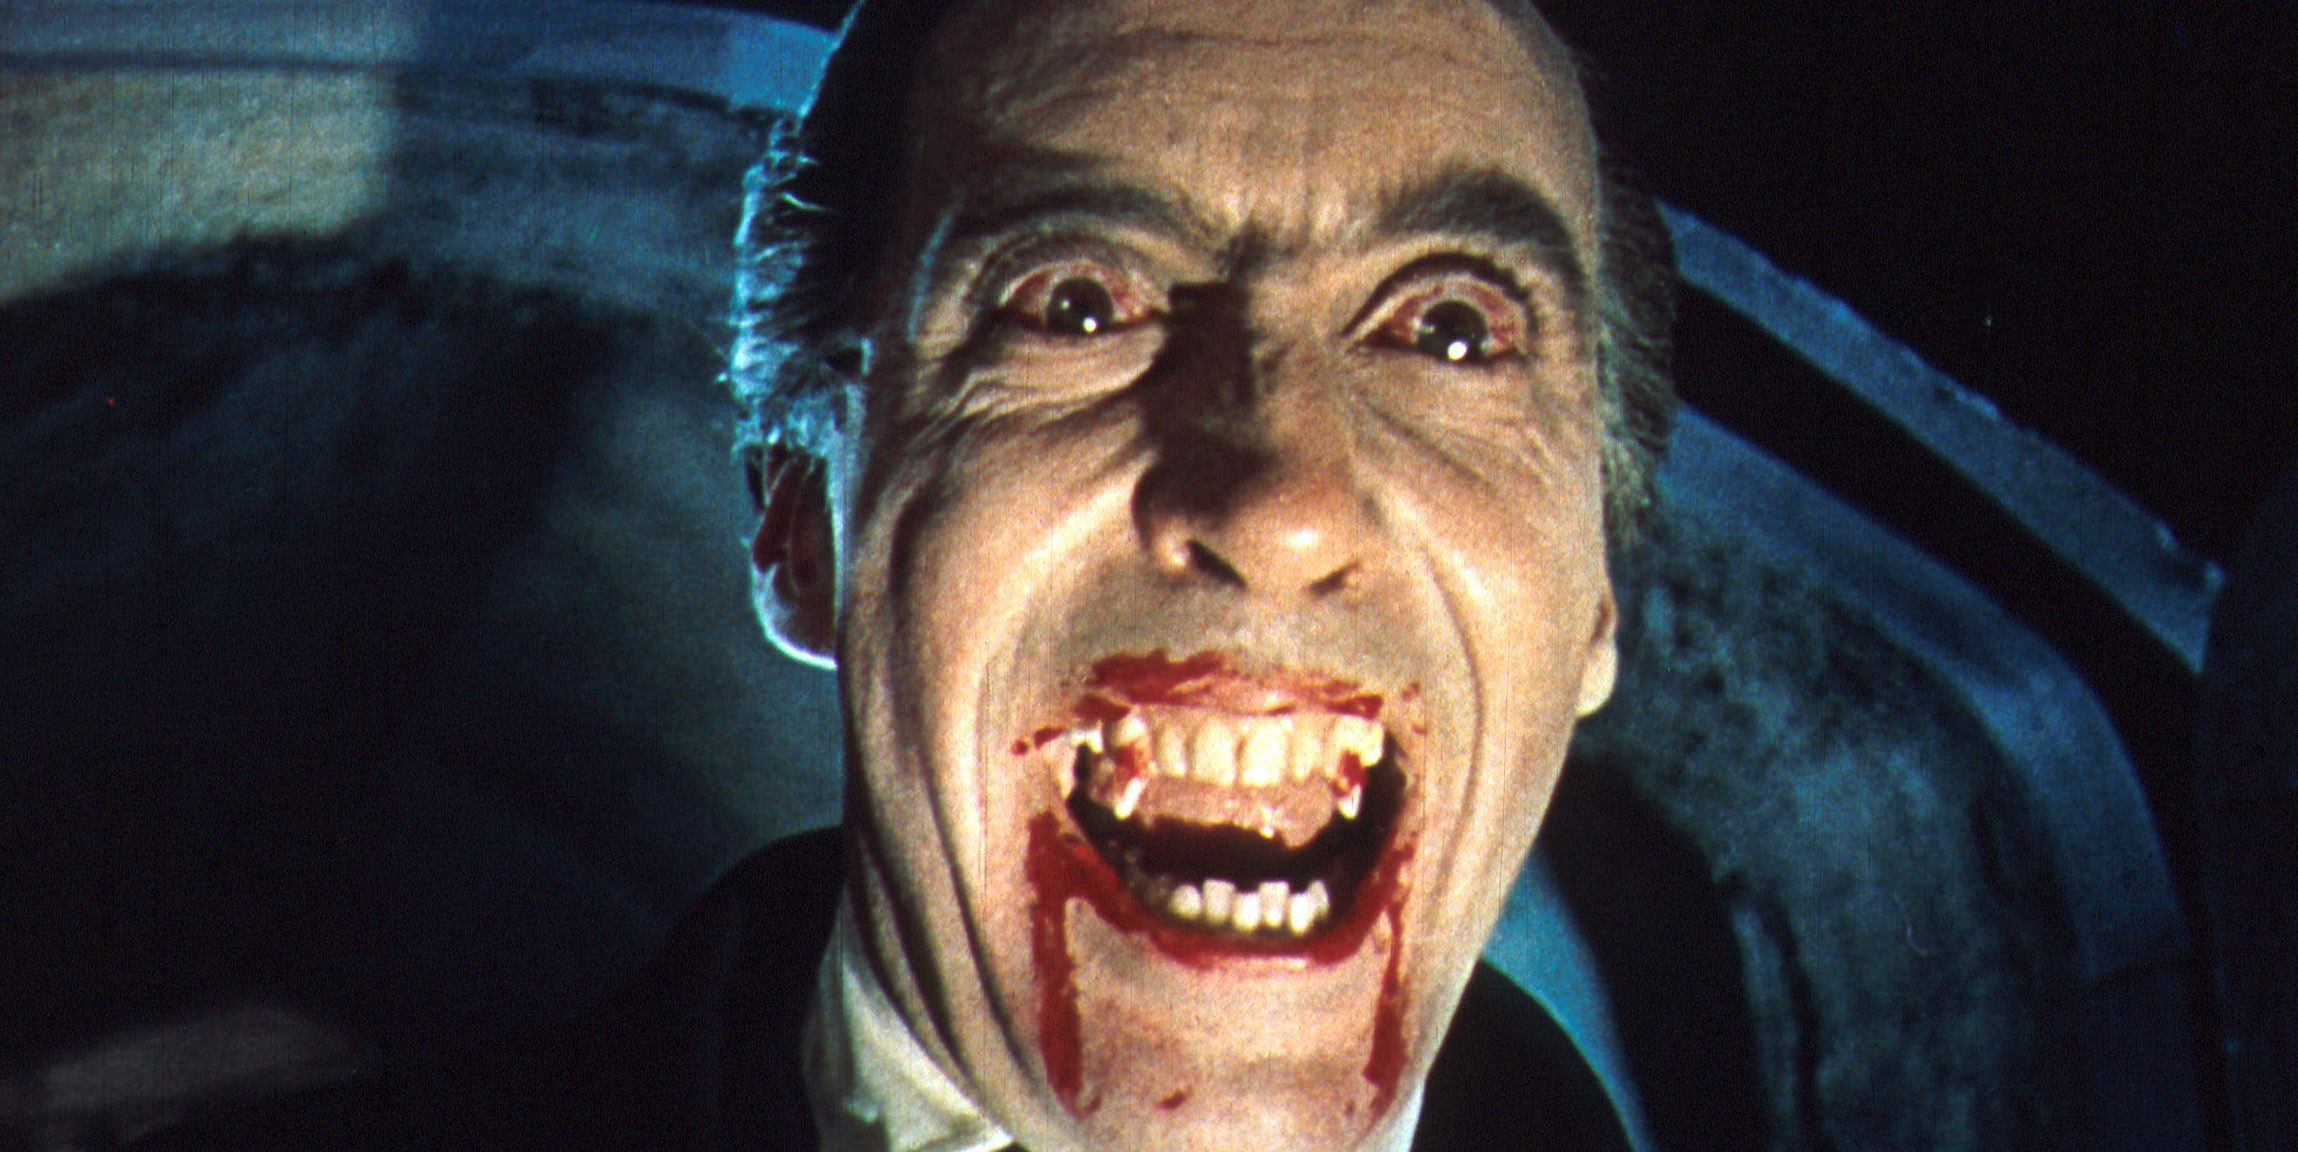 TITLE: DRACULA (1958) ¥ PERS: LEE, CHRISTOPHER ¥ YEAR: 1958 ¥ DIR: FISHER, TERENCE ¥ REF: DRA015CJ ¥ CREDIT: [ THE KOBAL COLLECTION / HAMMER ]